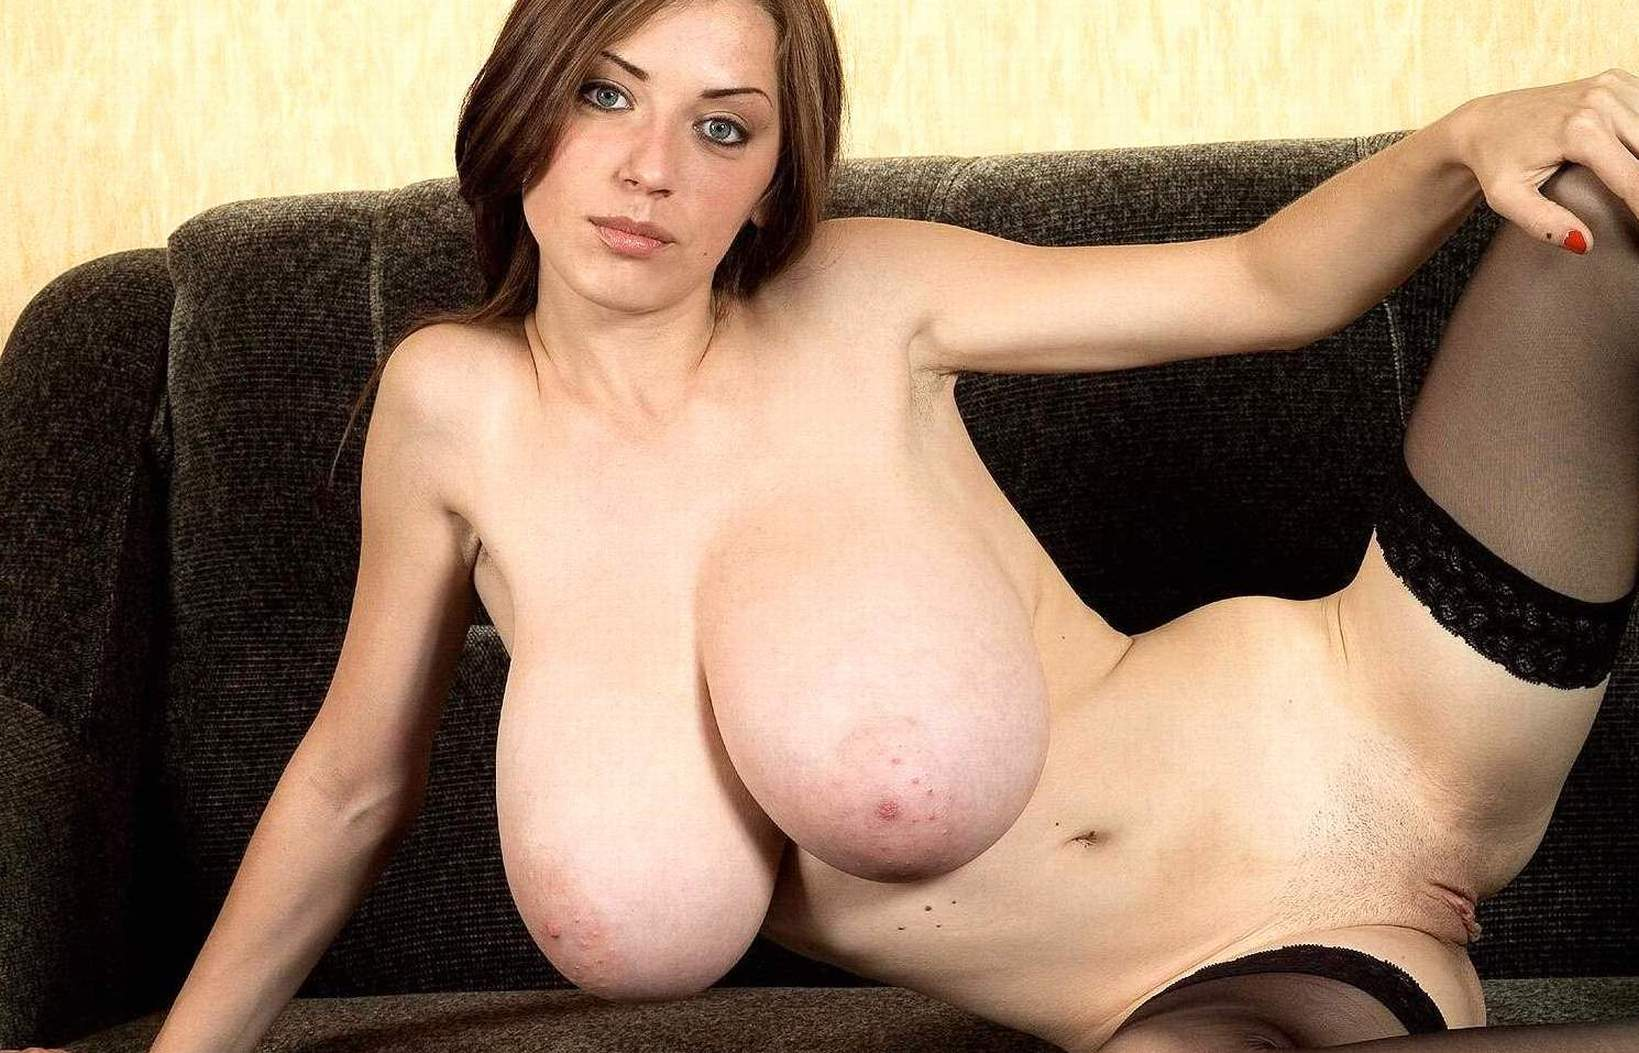 Level cam female boob photos free have